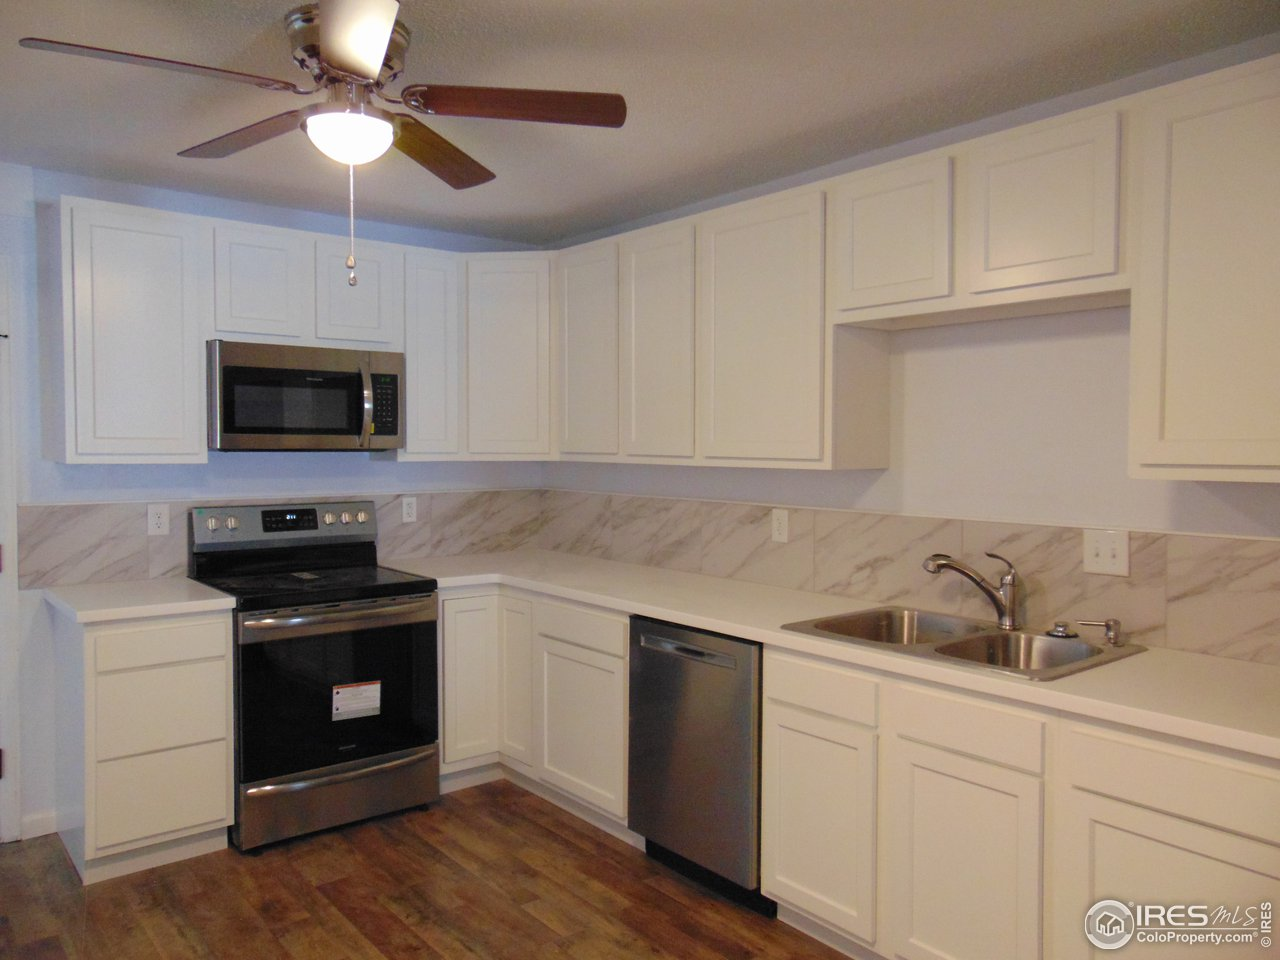 New kitchen cabinets and appliances